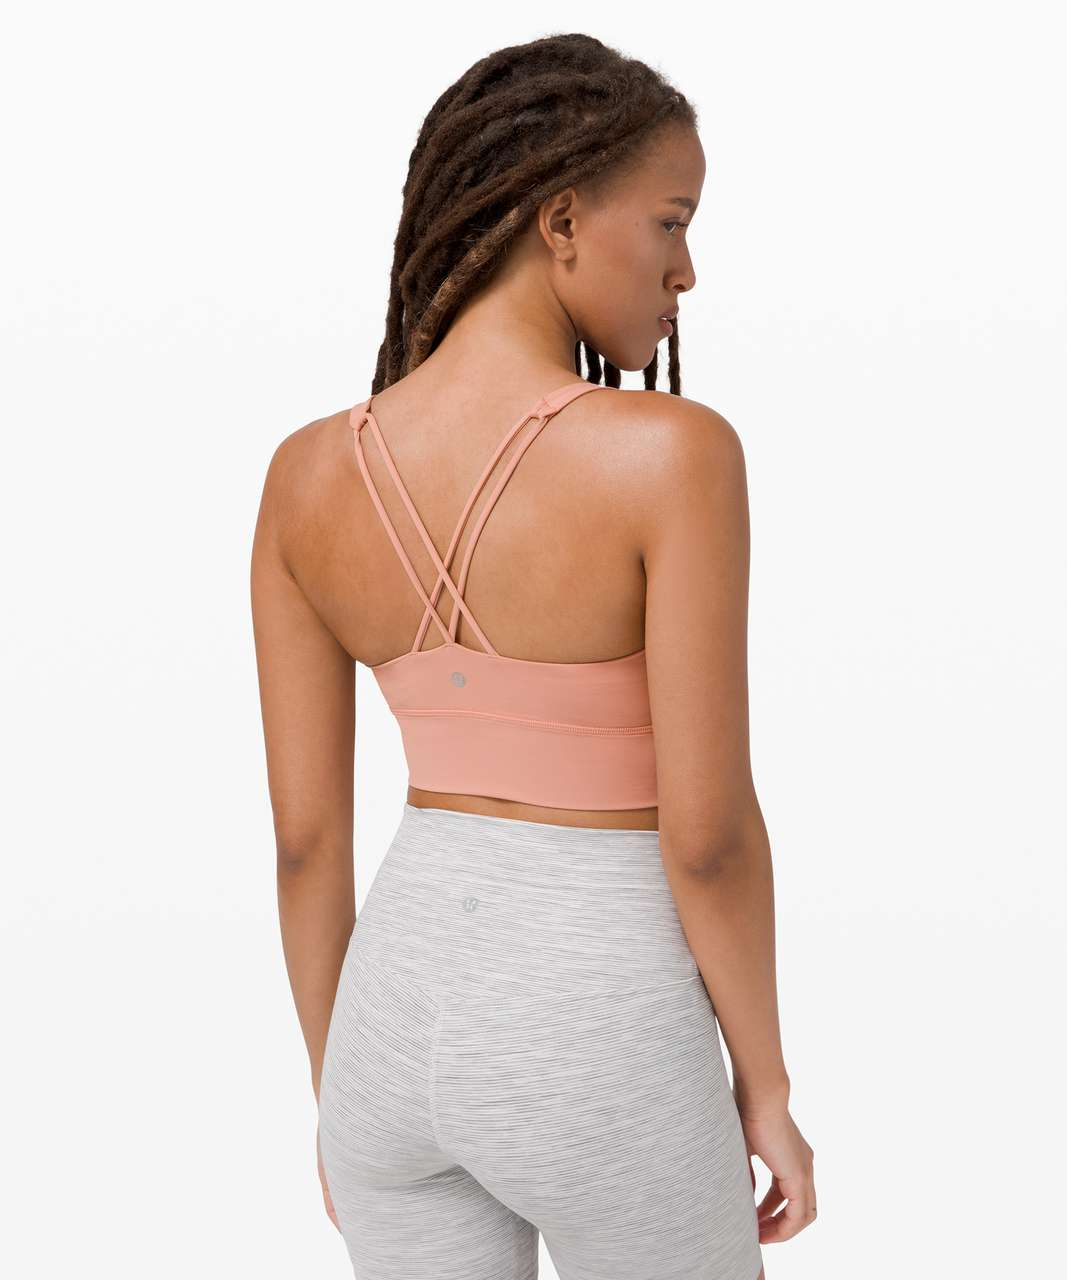 Lululemon Free To Be Bra Long Line *Light Support, A/B Cup - Pink Pastel